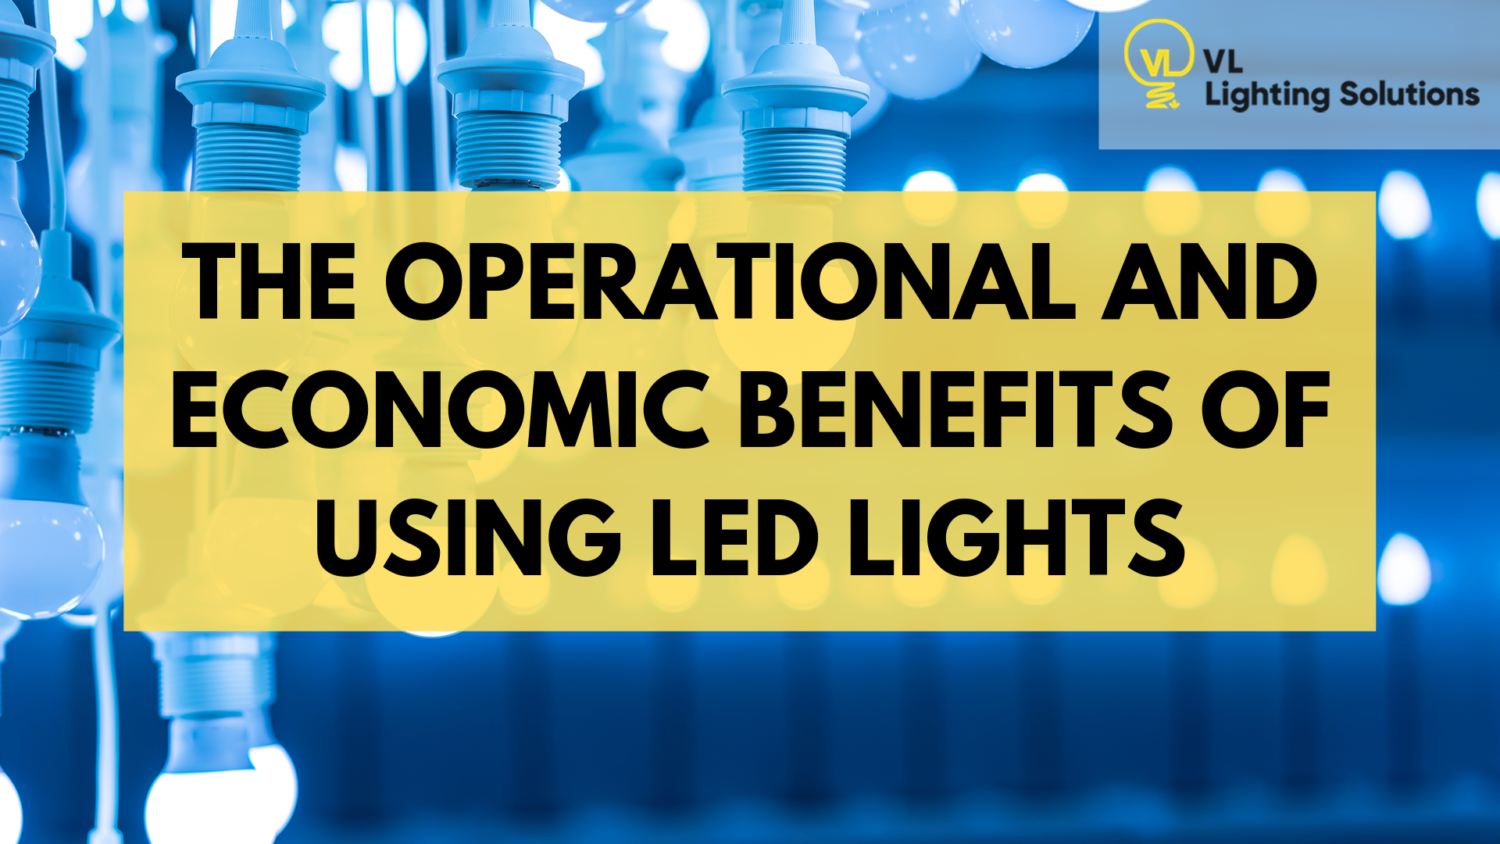 The Operational and Economic Benefits of Using LED Lights